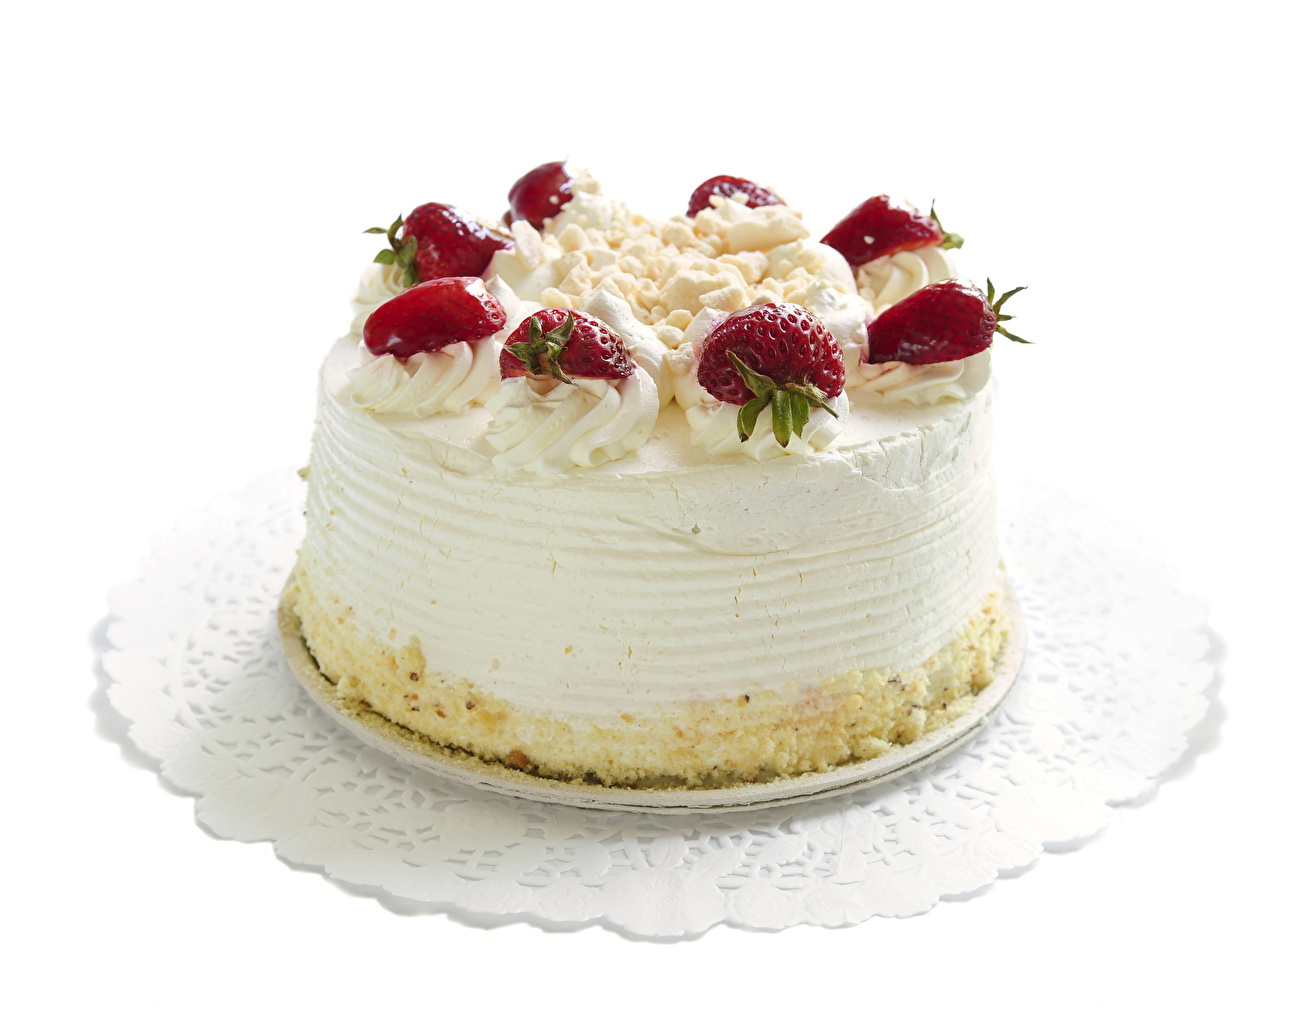 Picture Cakes Strawberry Food Sweets White background Torte confectionery